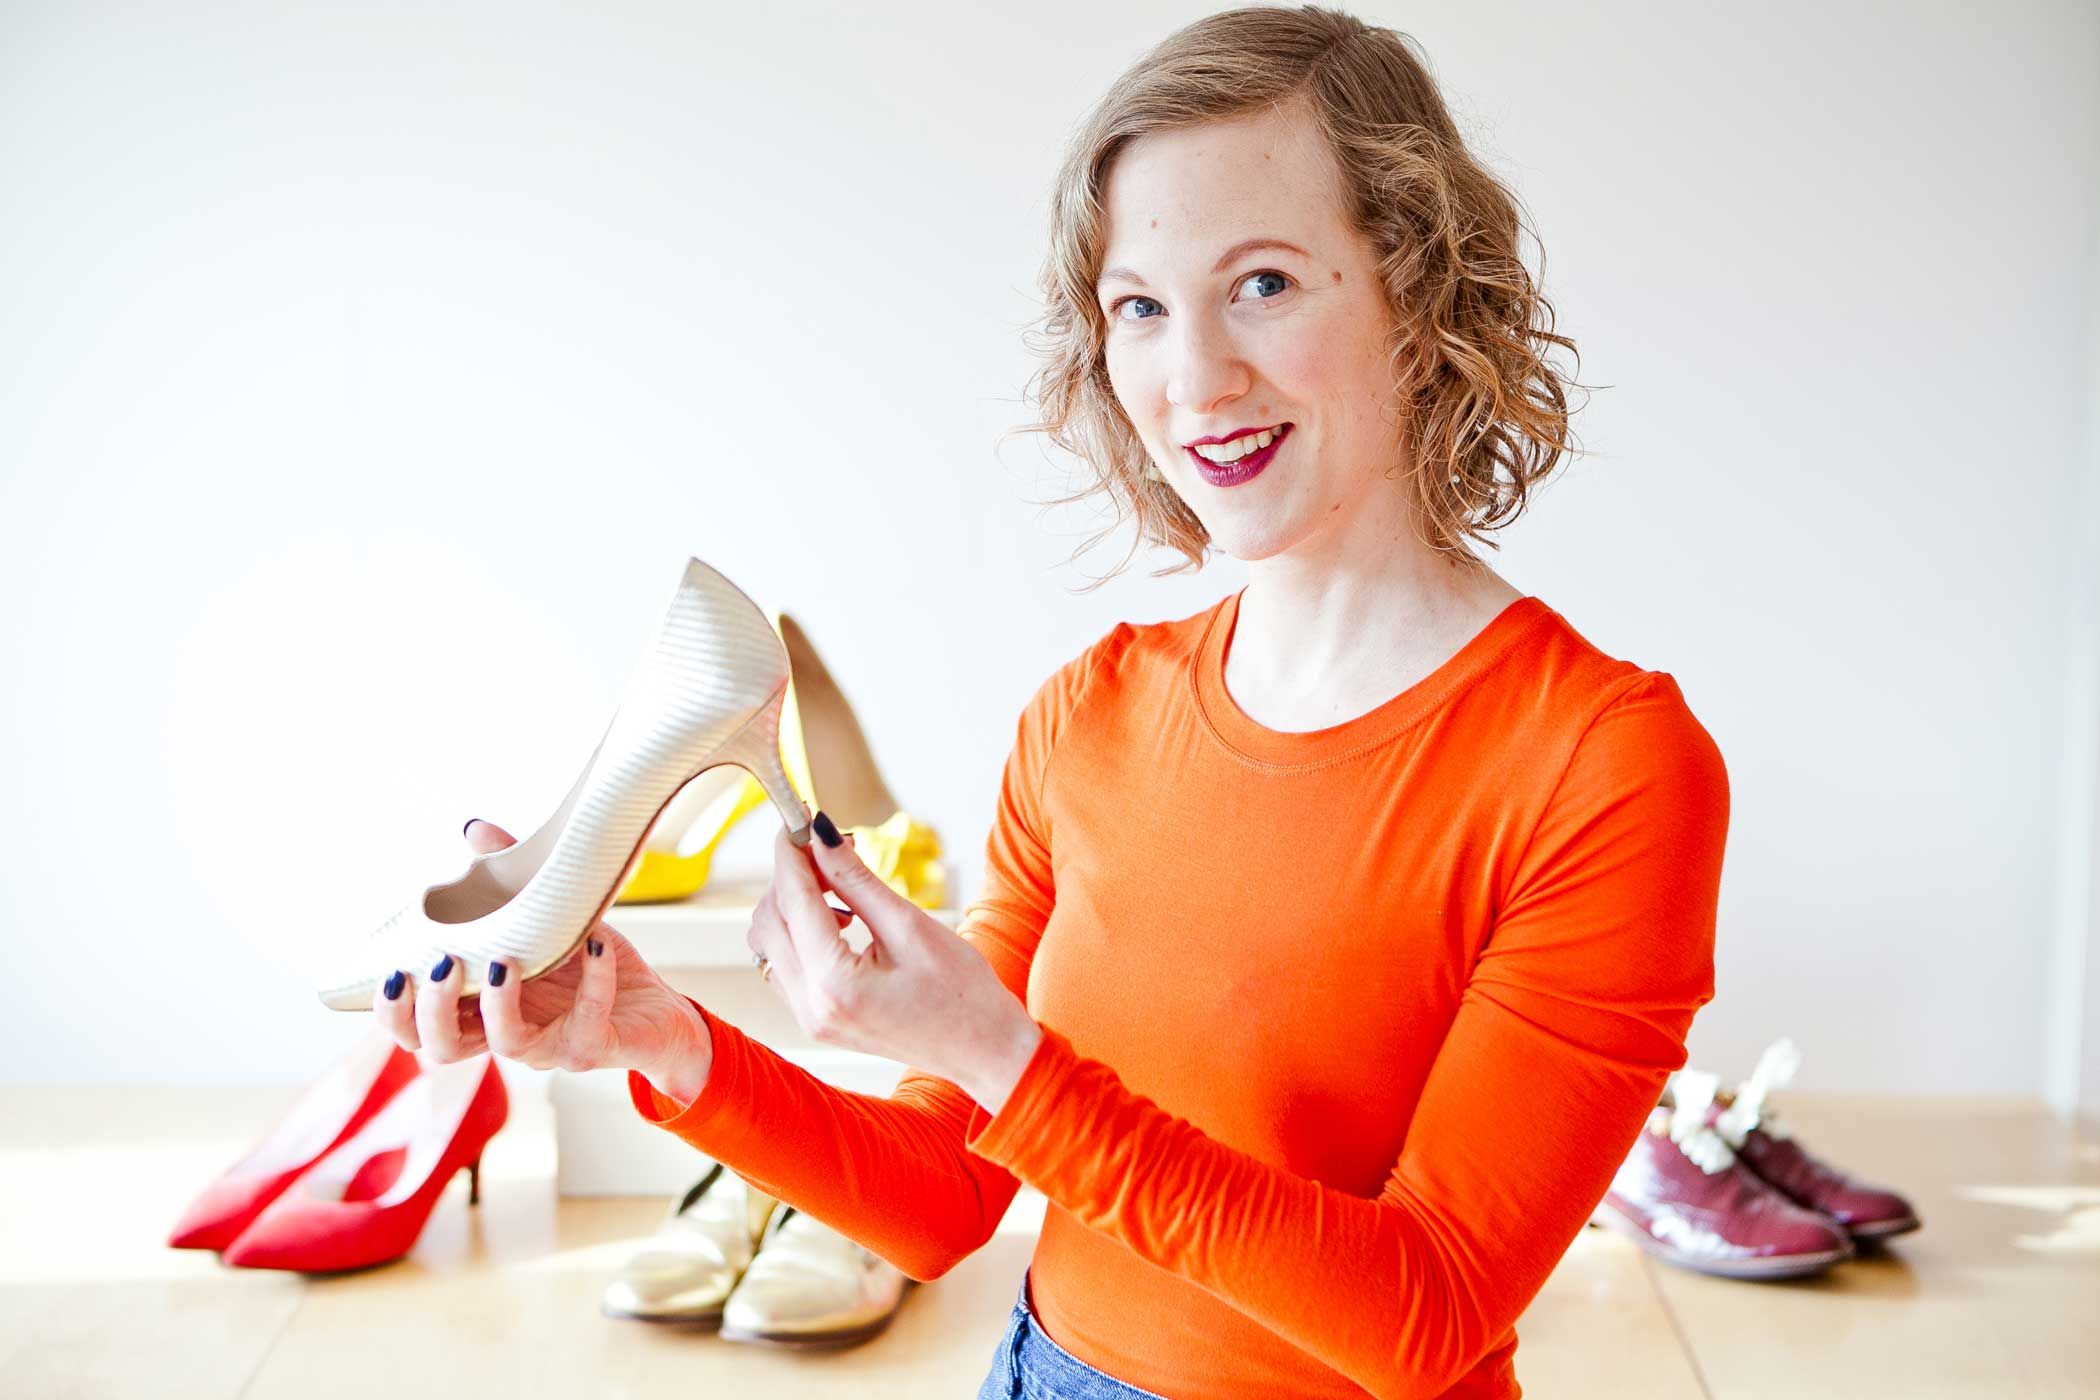 Susannah Davda, Founder, The Shoe Consultant